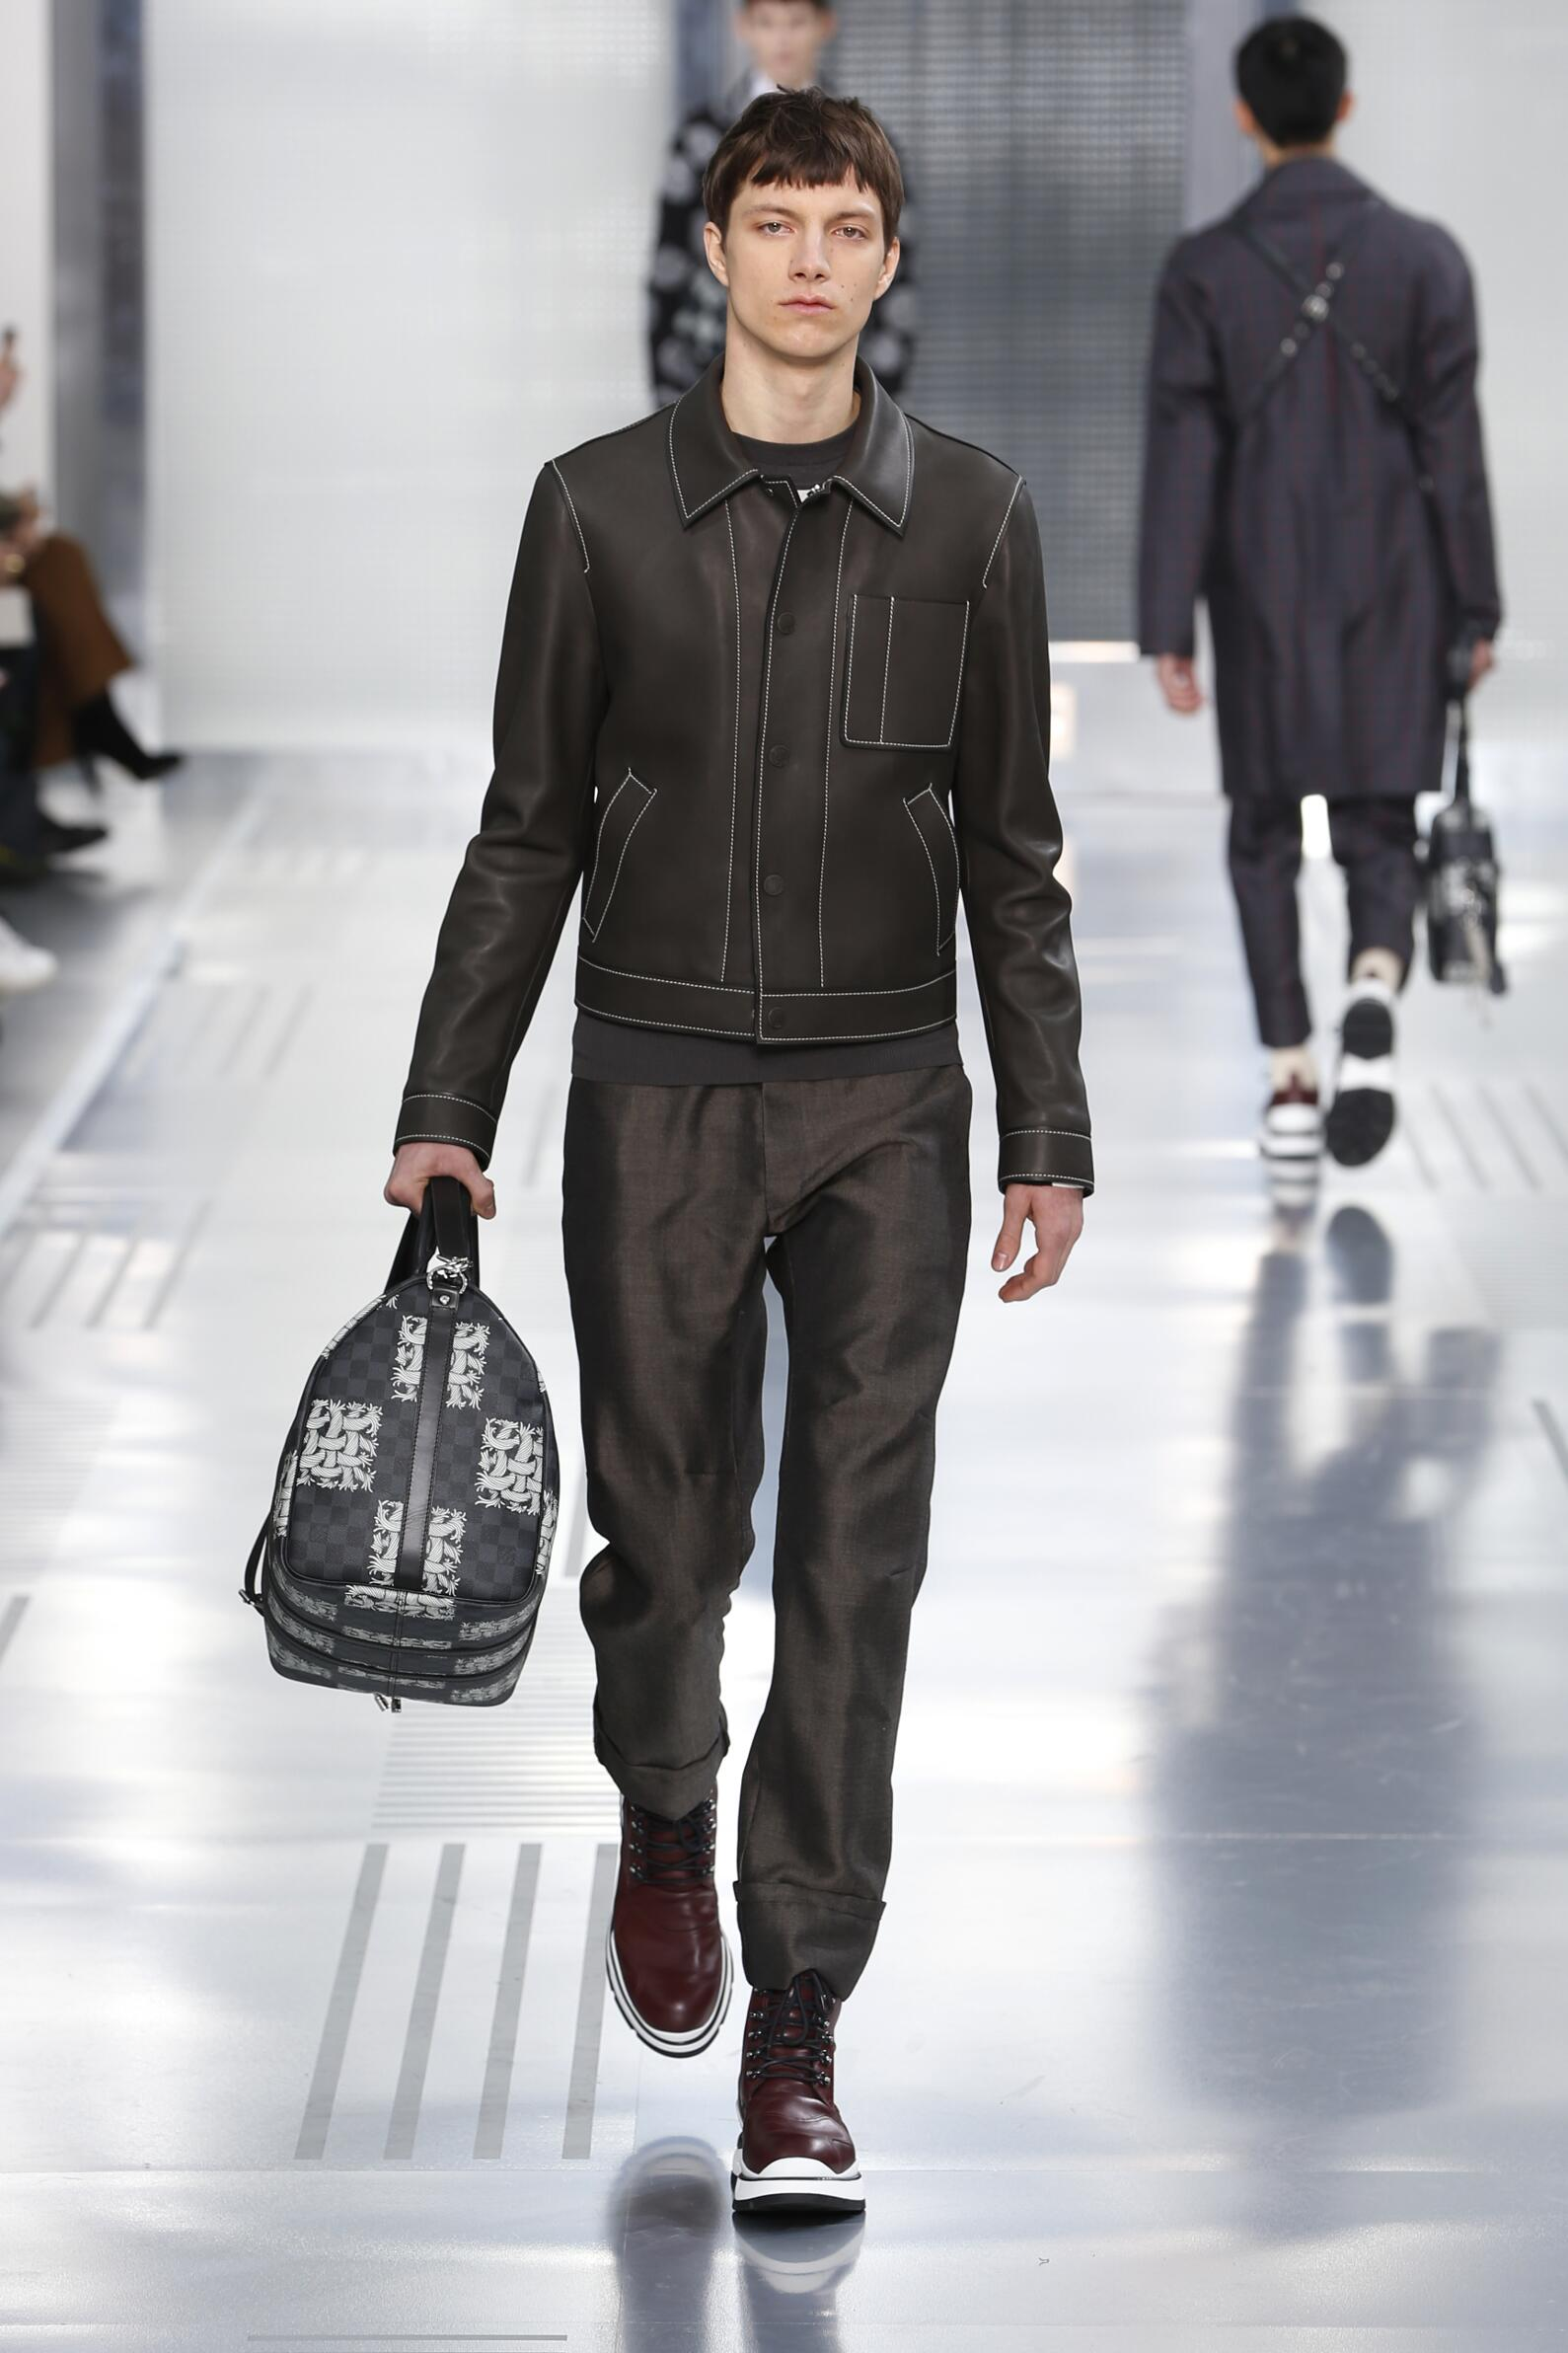 Catwalk Louis Vuitton Menswear Collection Winter 2015